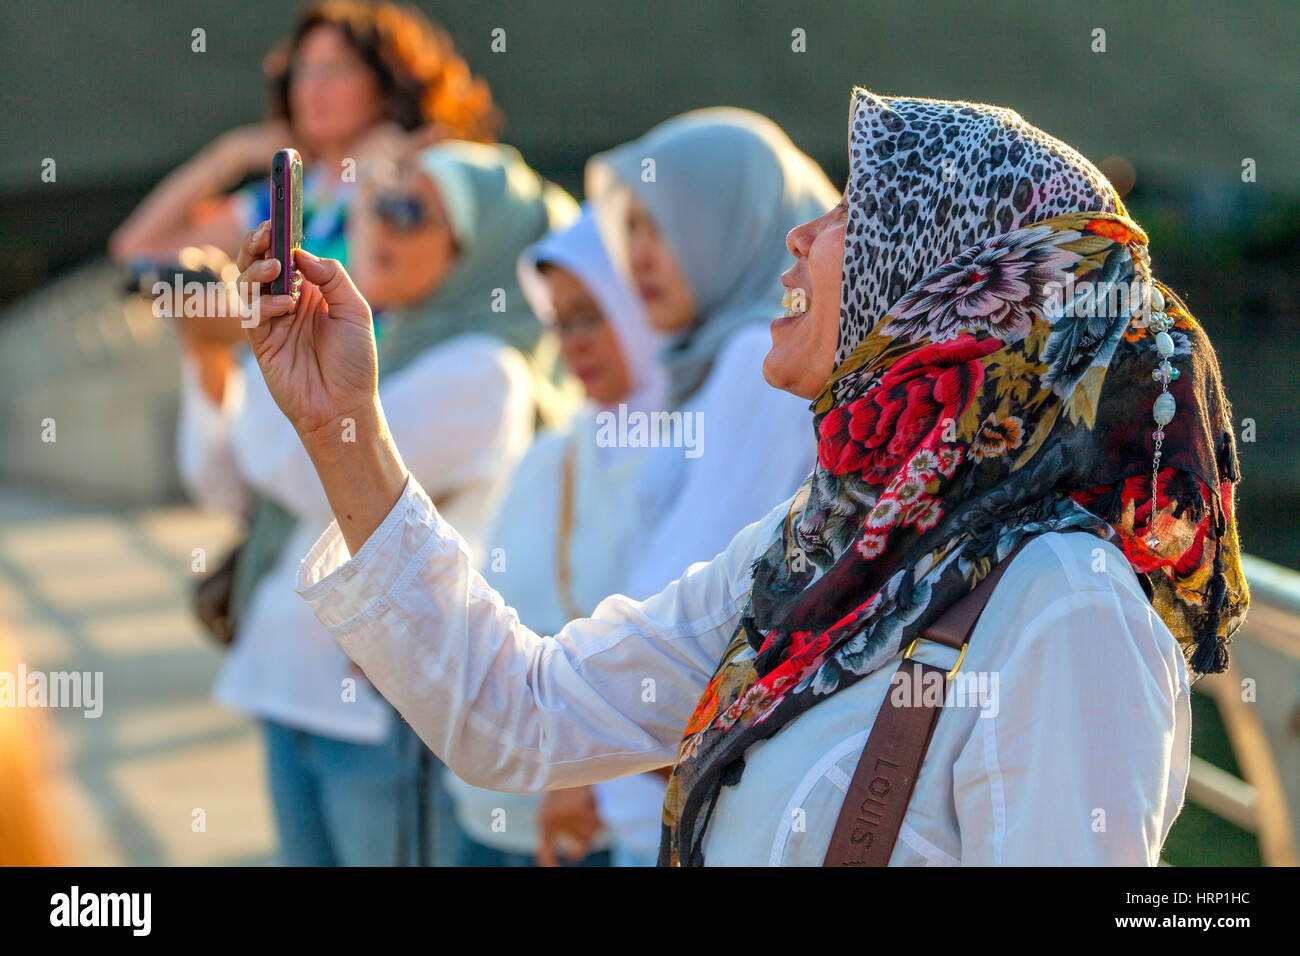 woman, Tourist with scarf, photographed The Merlion, landmark of the metropolis of Singapore, downtown skyline, - Stock Image